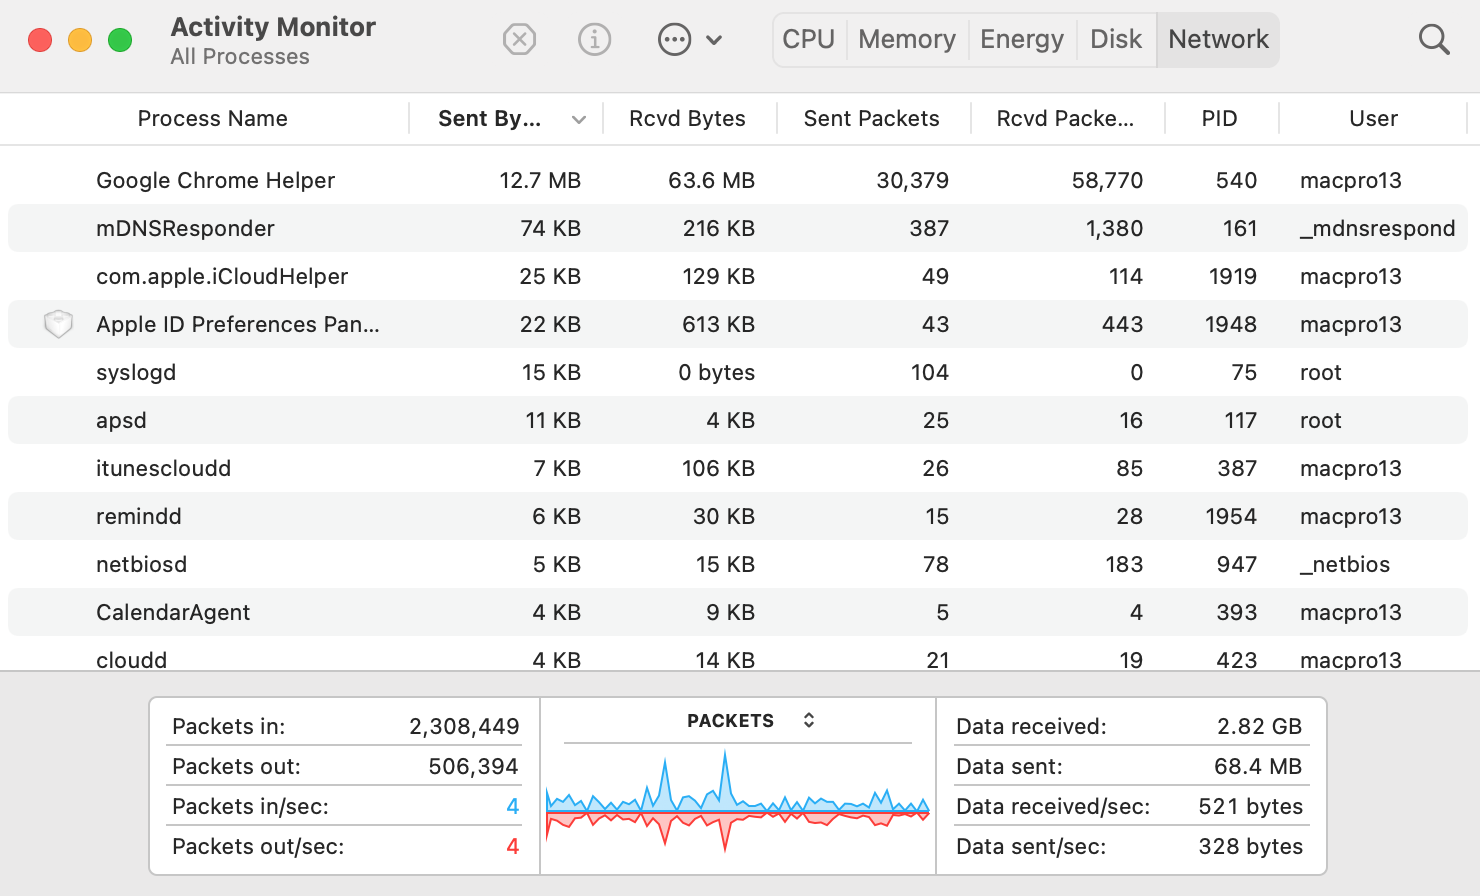 Network activity in activity monitor